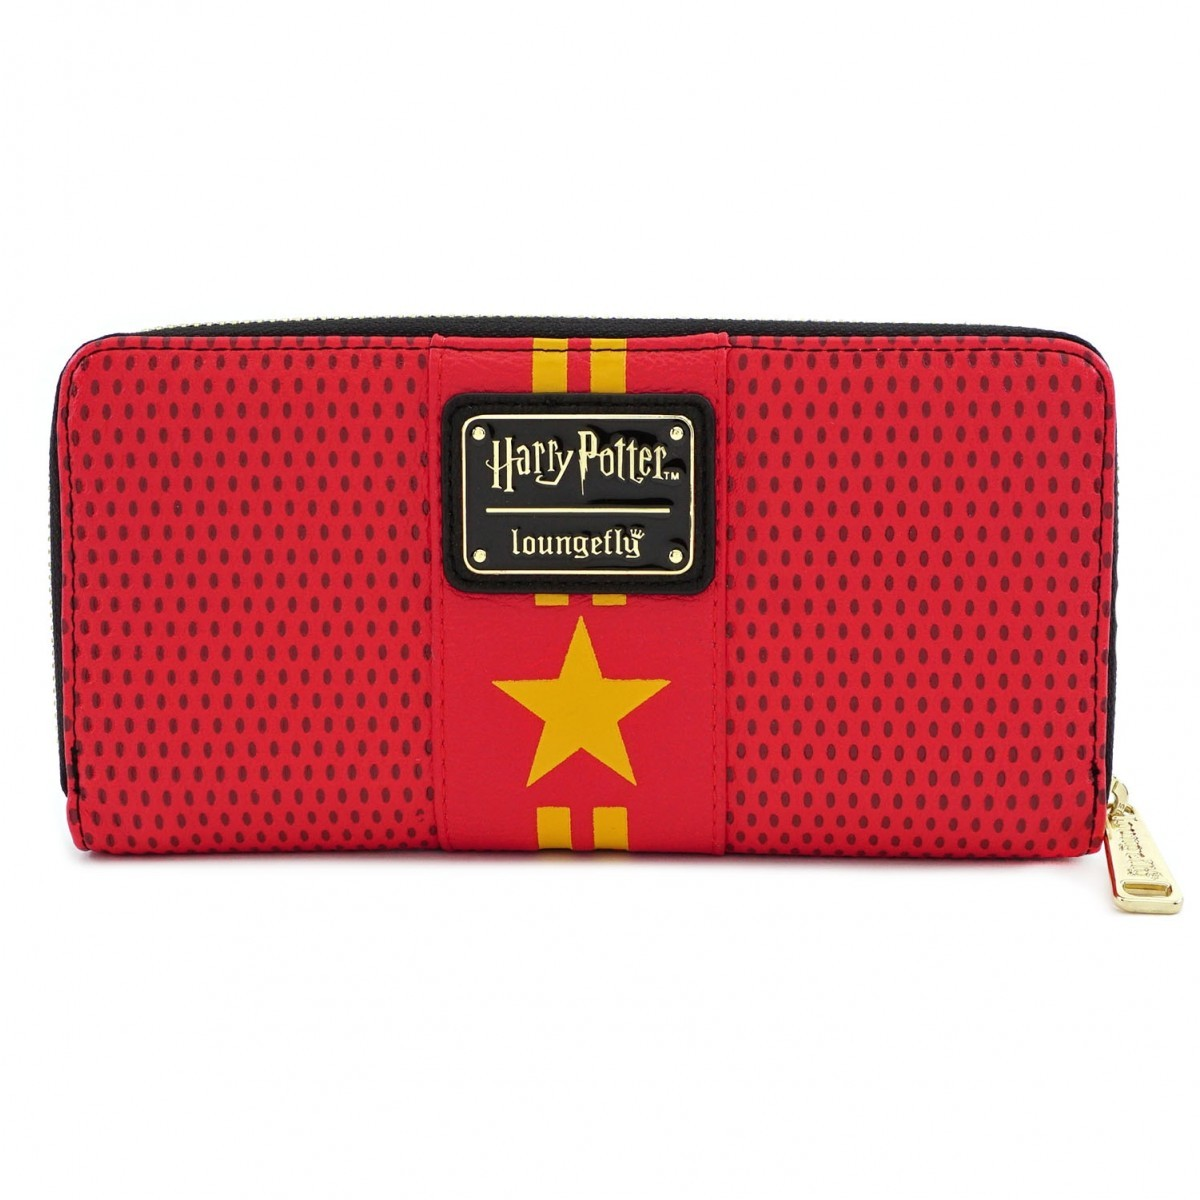 Loungefly: Harry Potter - Hogwarts Zip Wallet image